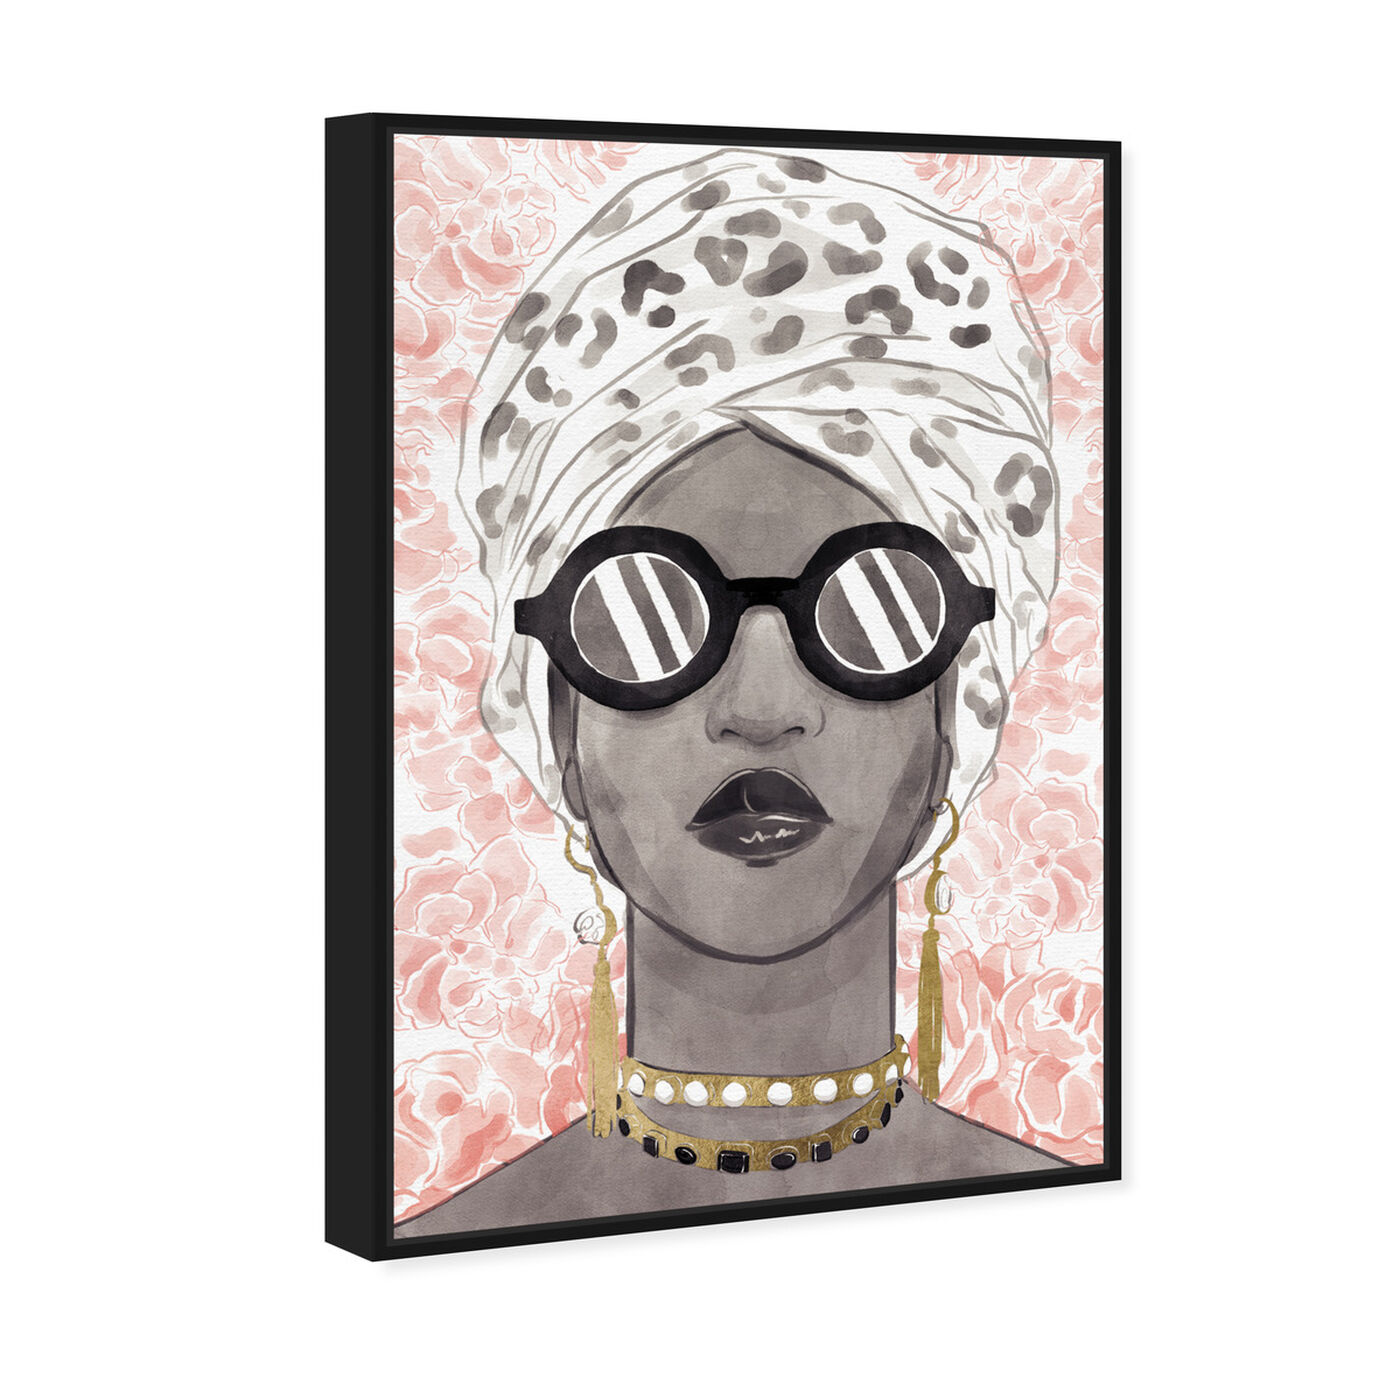 Angled view of Spots and Shades featuring fashion and glam and accessories art.